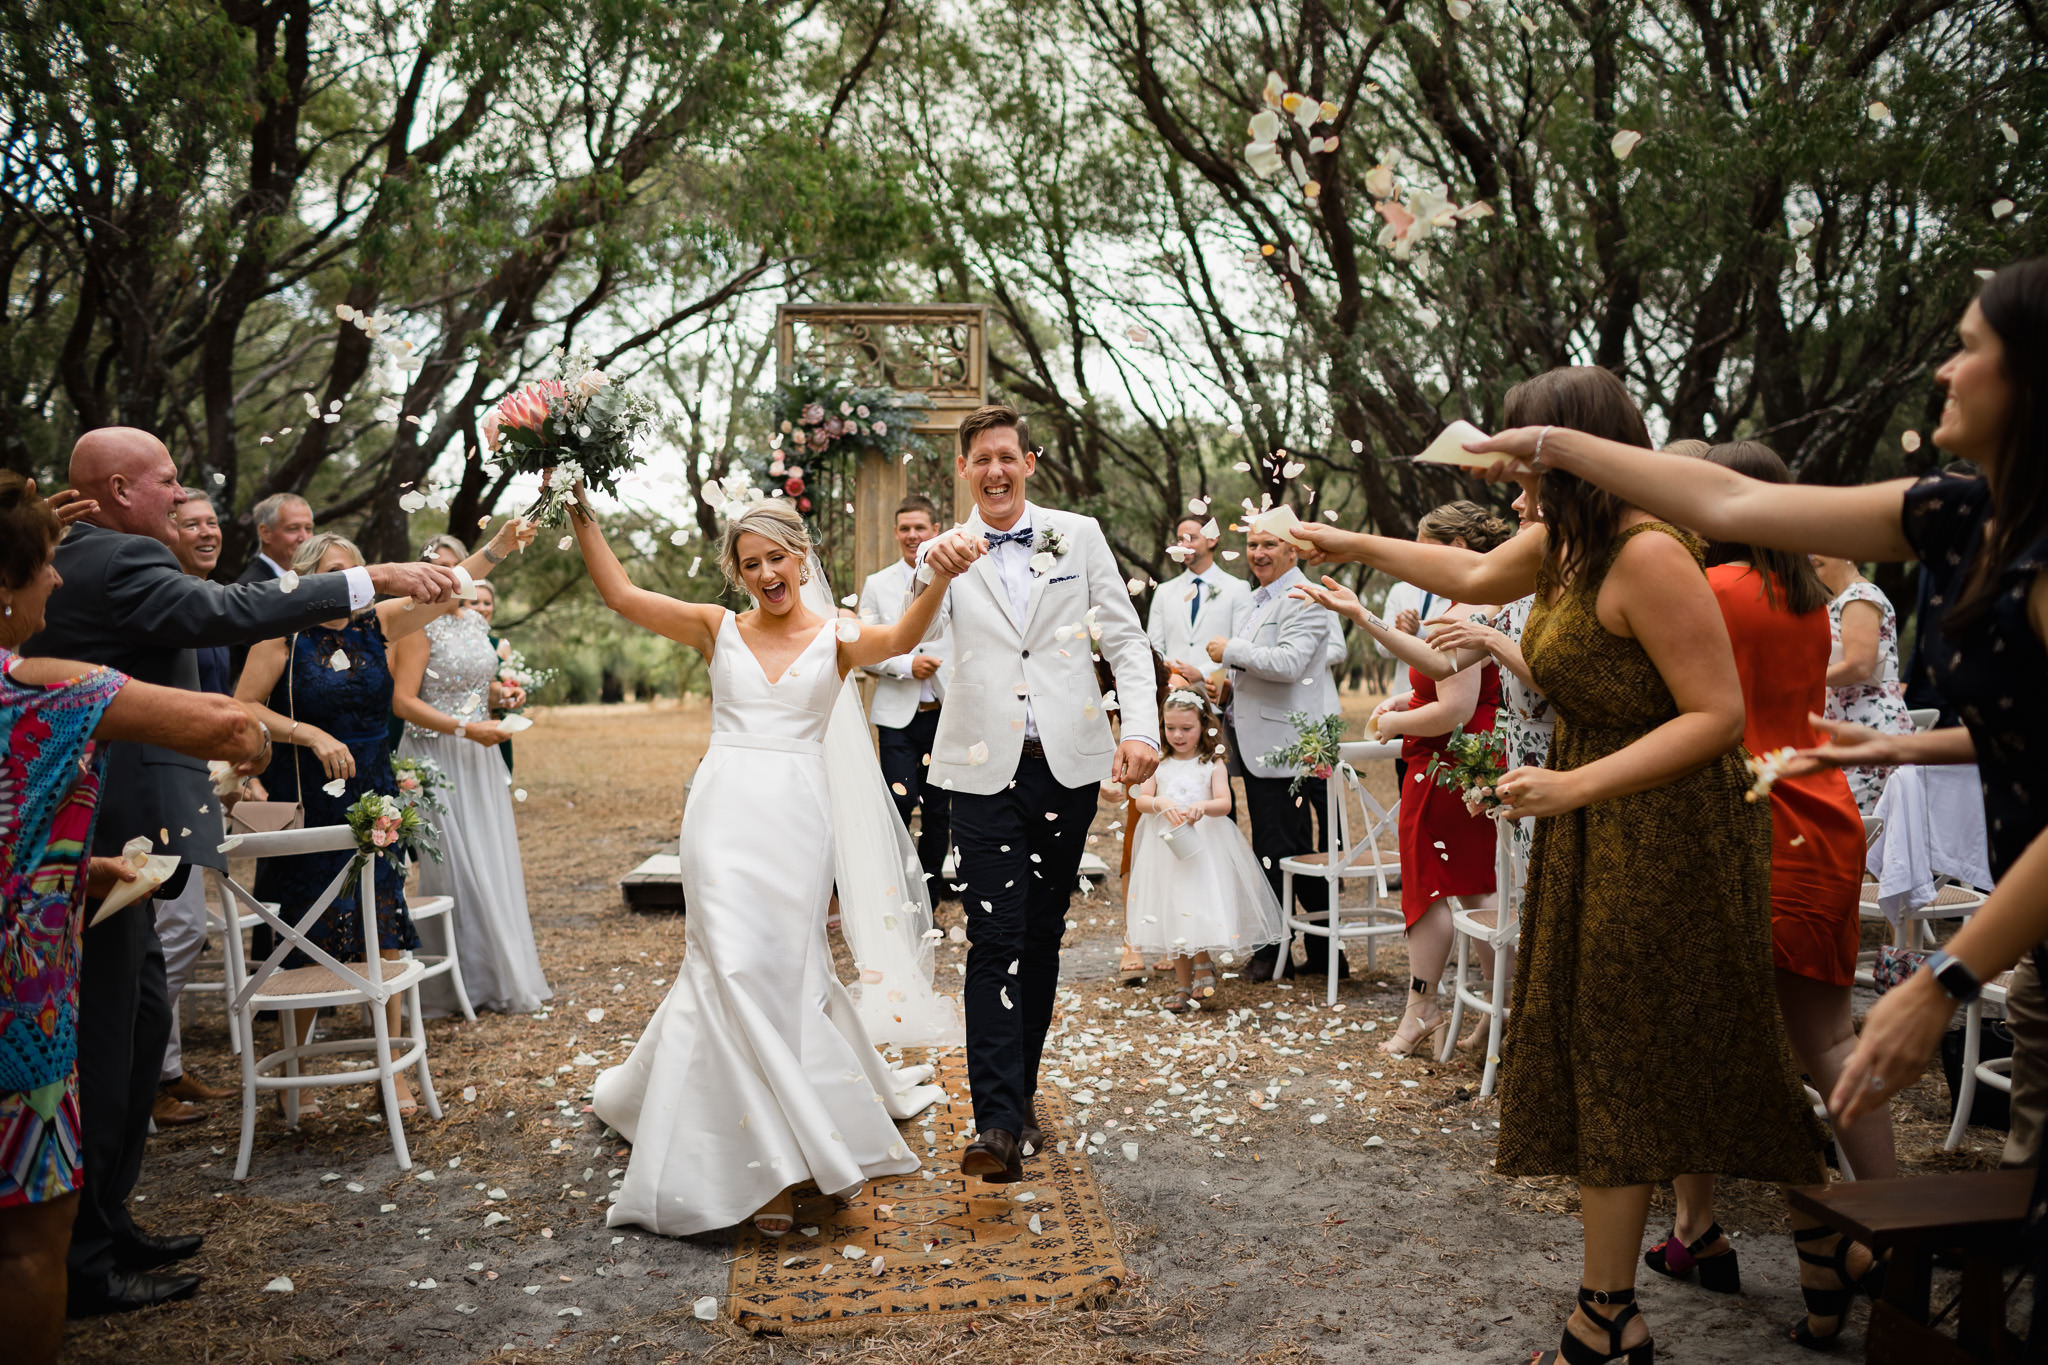 Bride and groom walking back down aisle after wedding as guests throw white petals and confetti over them at Solitaire Homestead in Yallingup